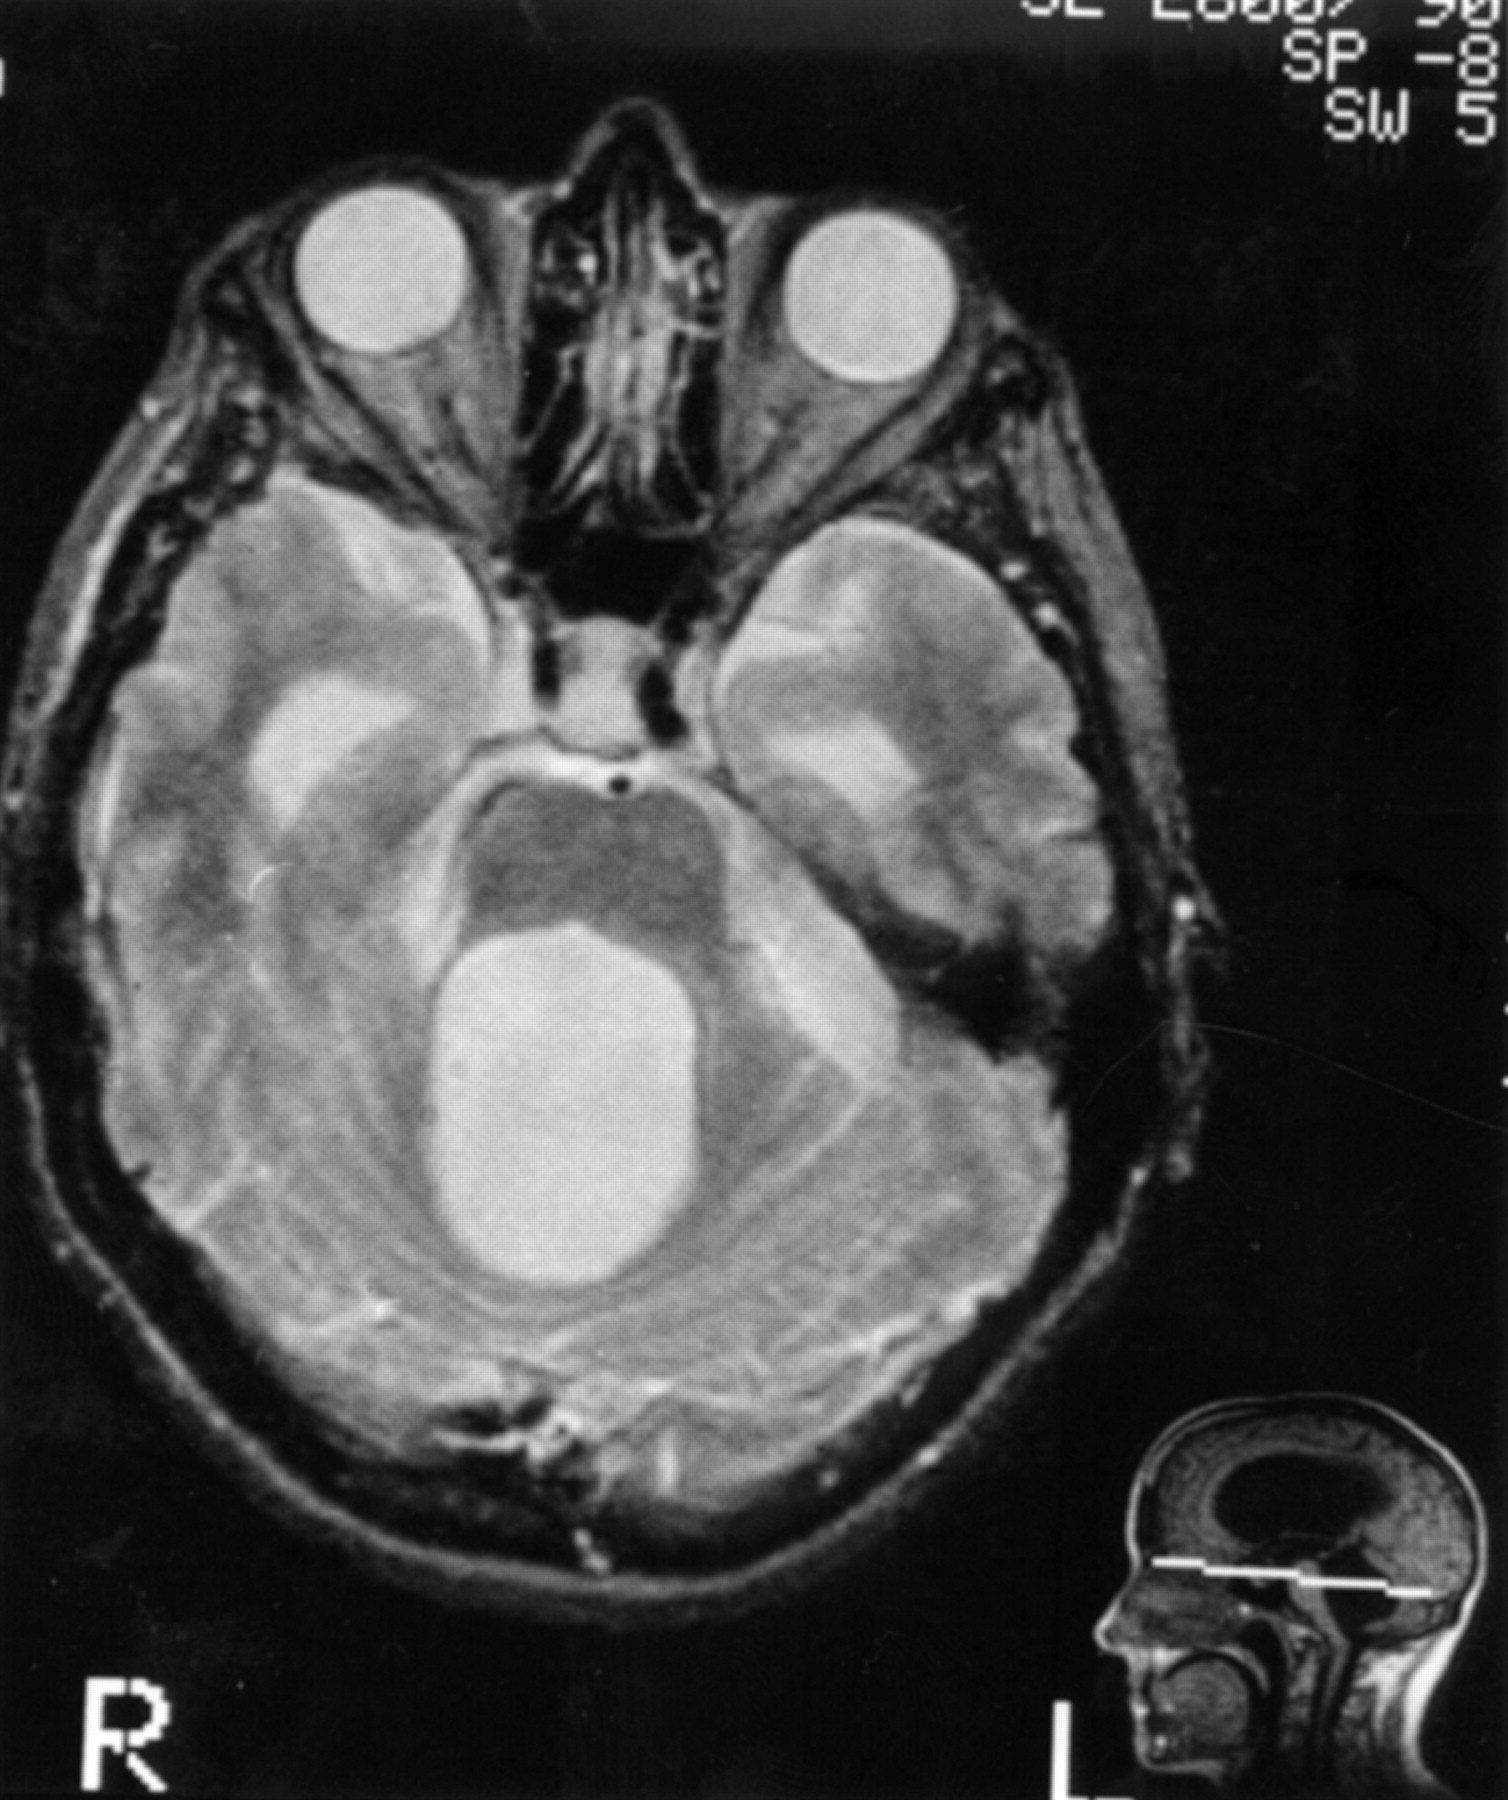 With congenital hydrocephalus adults